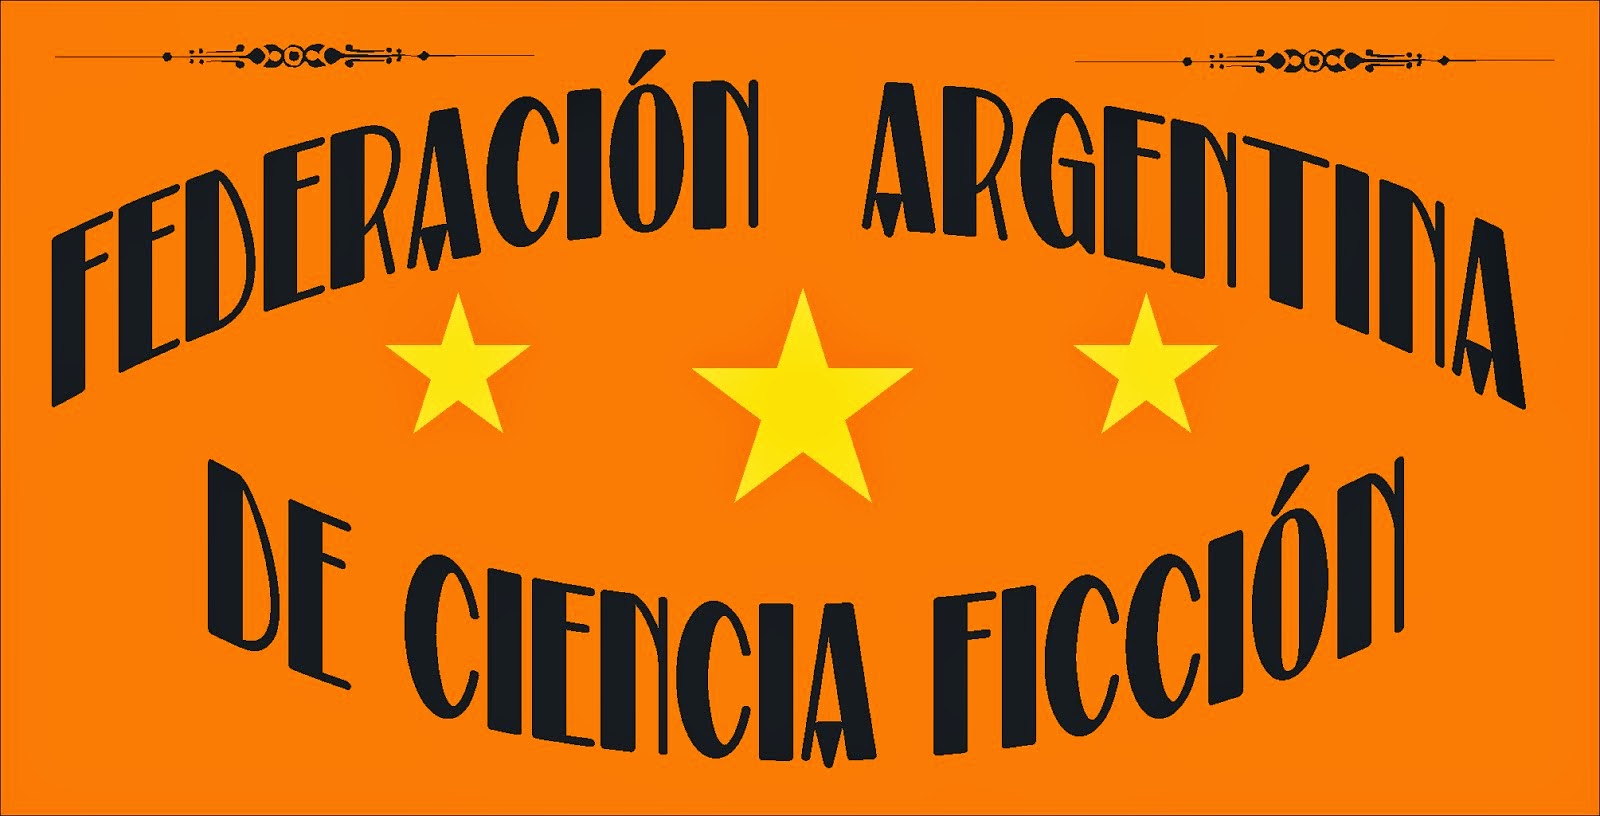 Federación Argentina de Ciencia Ficcion